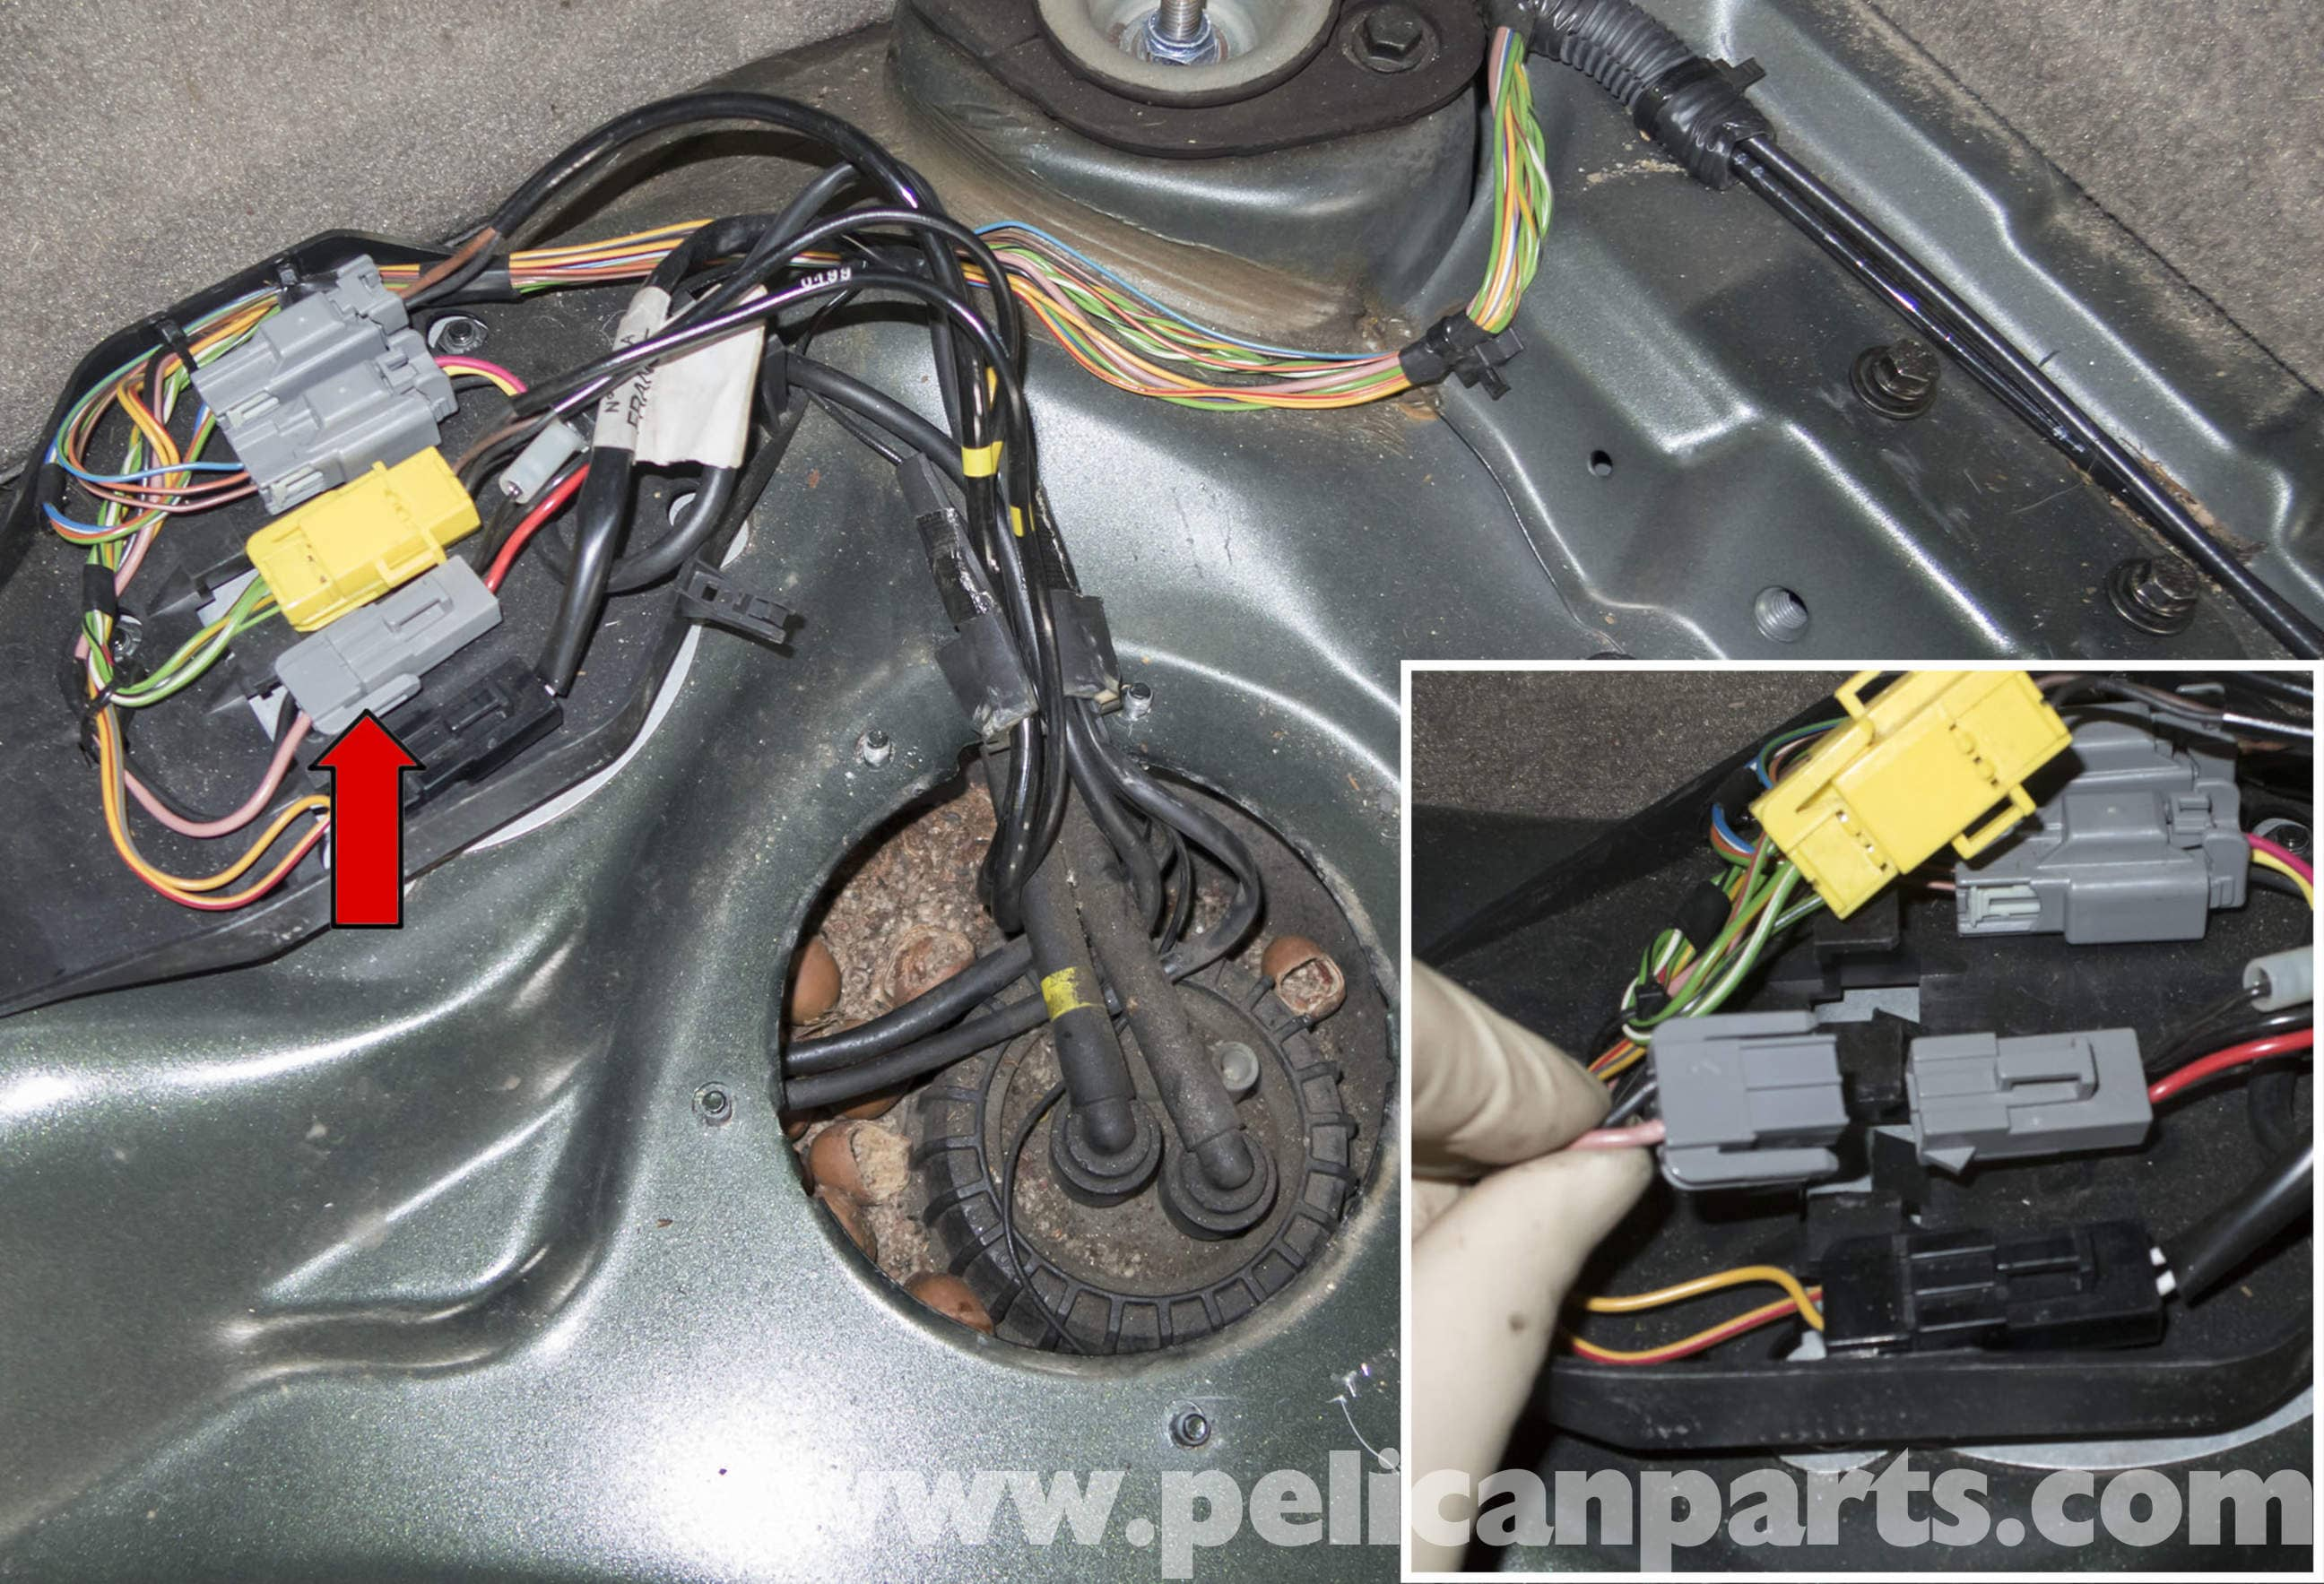 2007 Expedition Turn Signal Wiring Diagram Volvo V70 Fuel Pump Replacement 1998 2007 Pelican